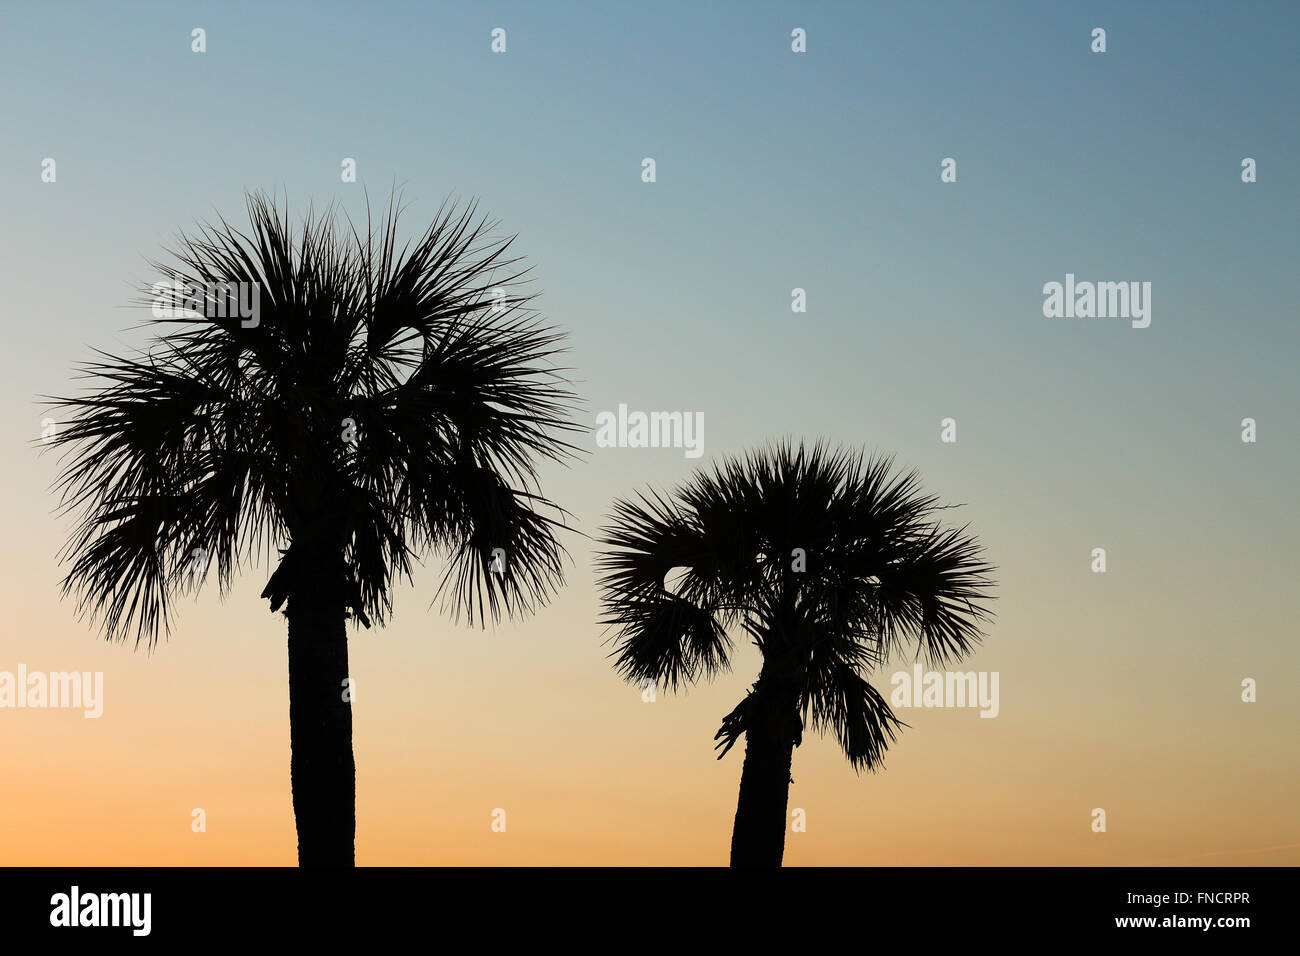 A silhouette of two palm trees taken on the beach at sunset. Stock Photo